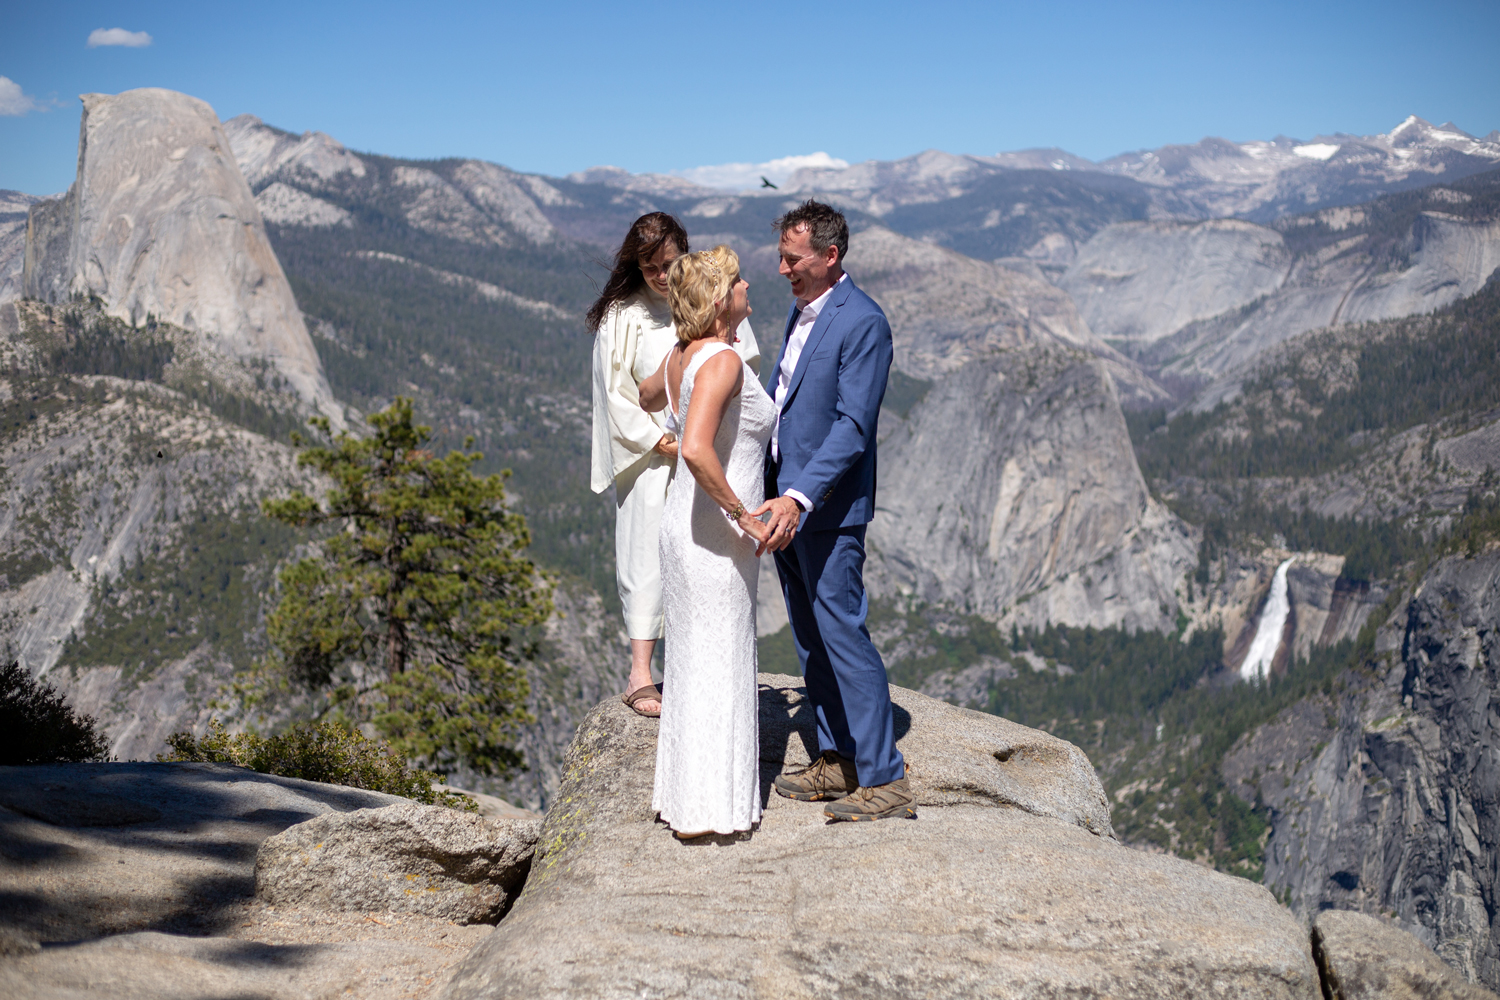 Yosemite-Wedding-photography-lisa-james (4).jpg